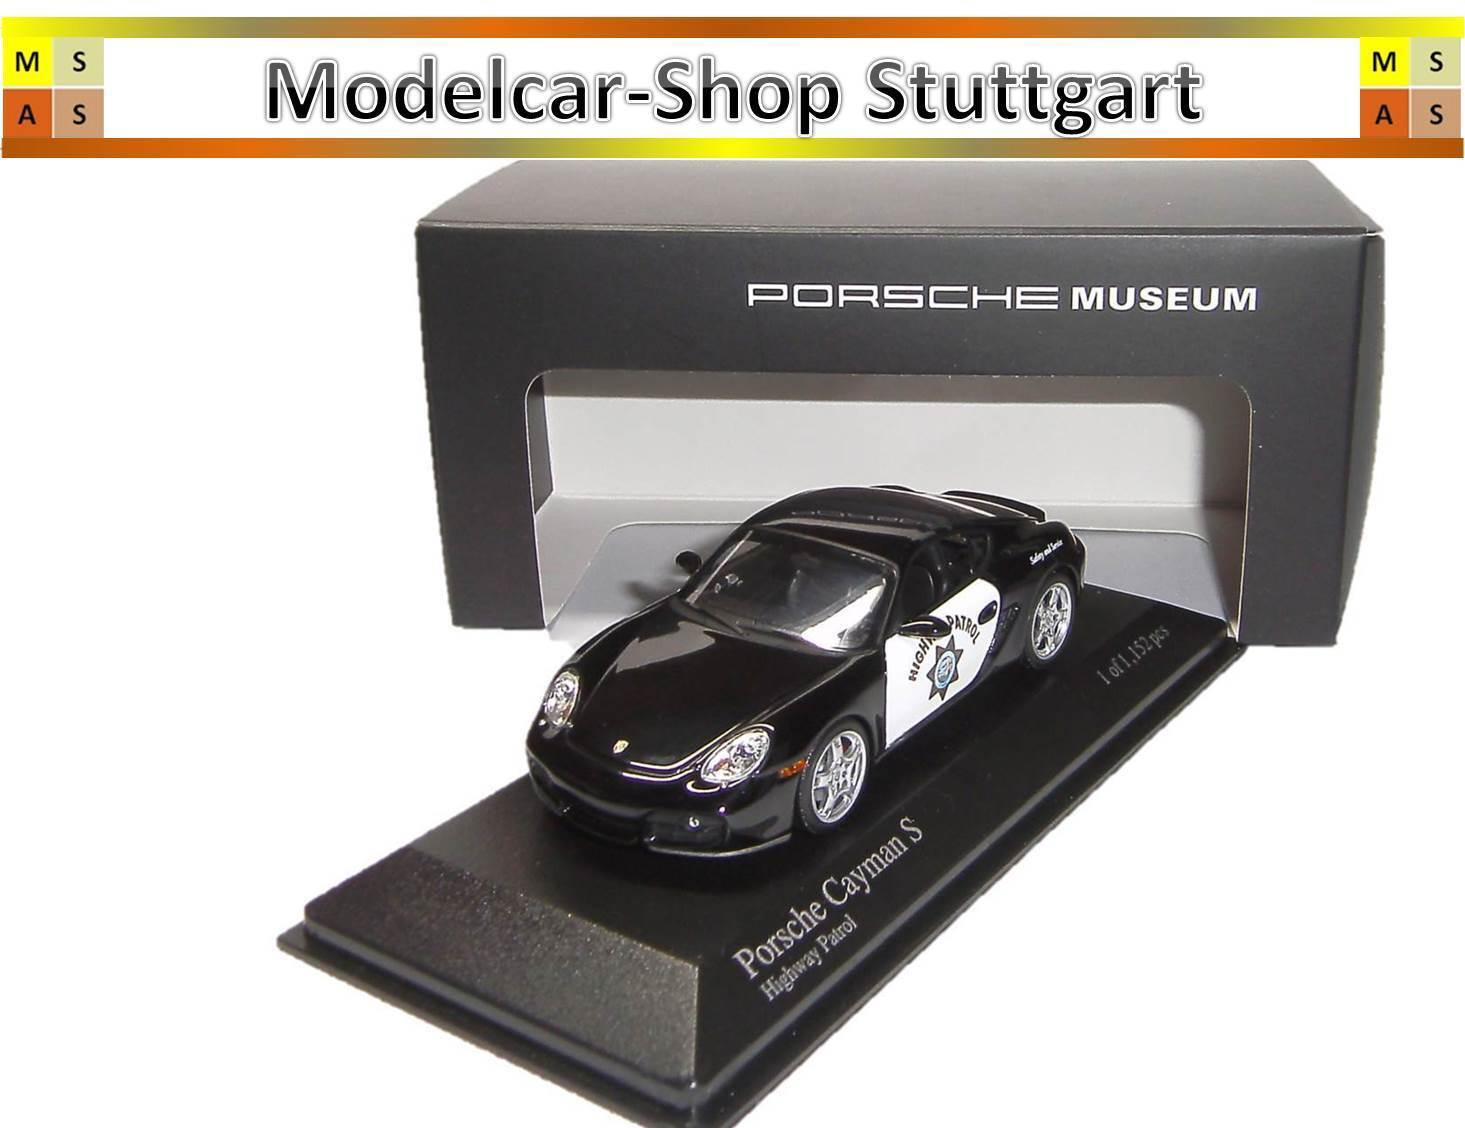 PORSCHE Highway Patrol Cayman S LTD. Museo Edition Minichamps 1 43 map02031516